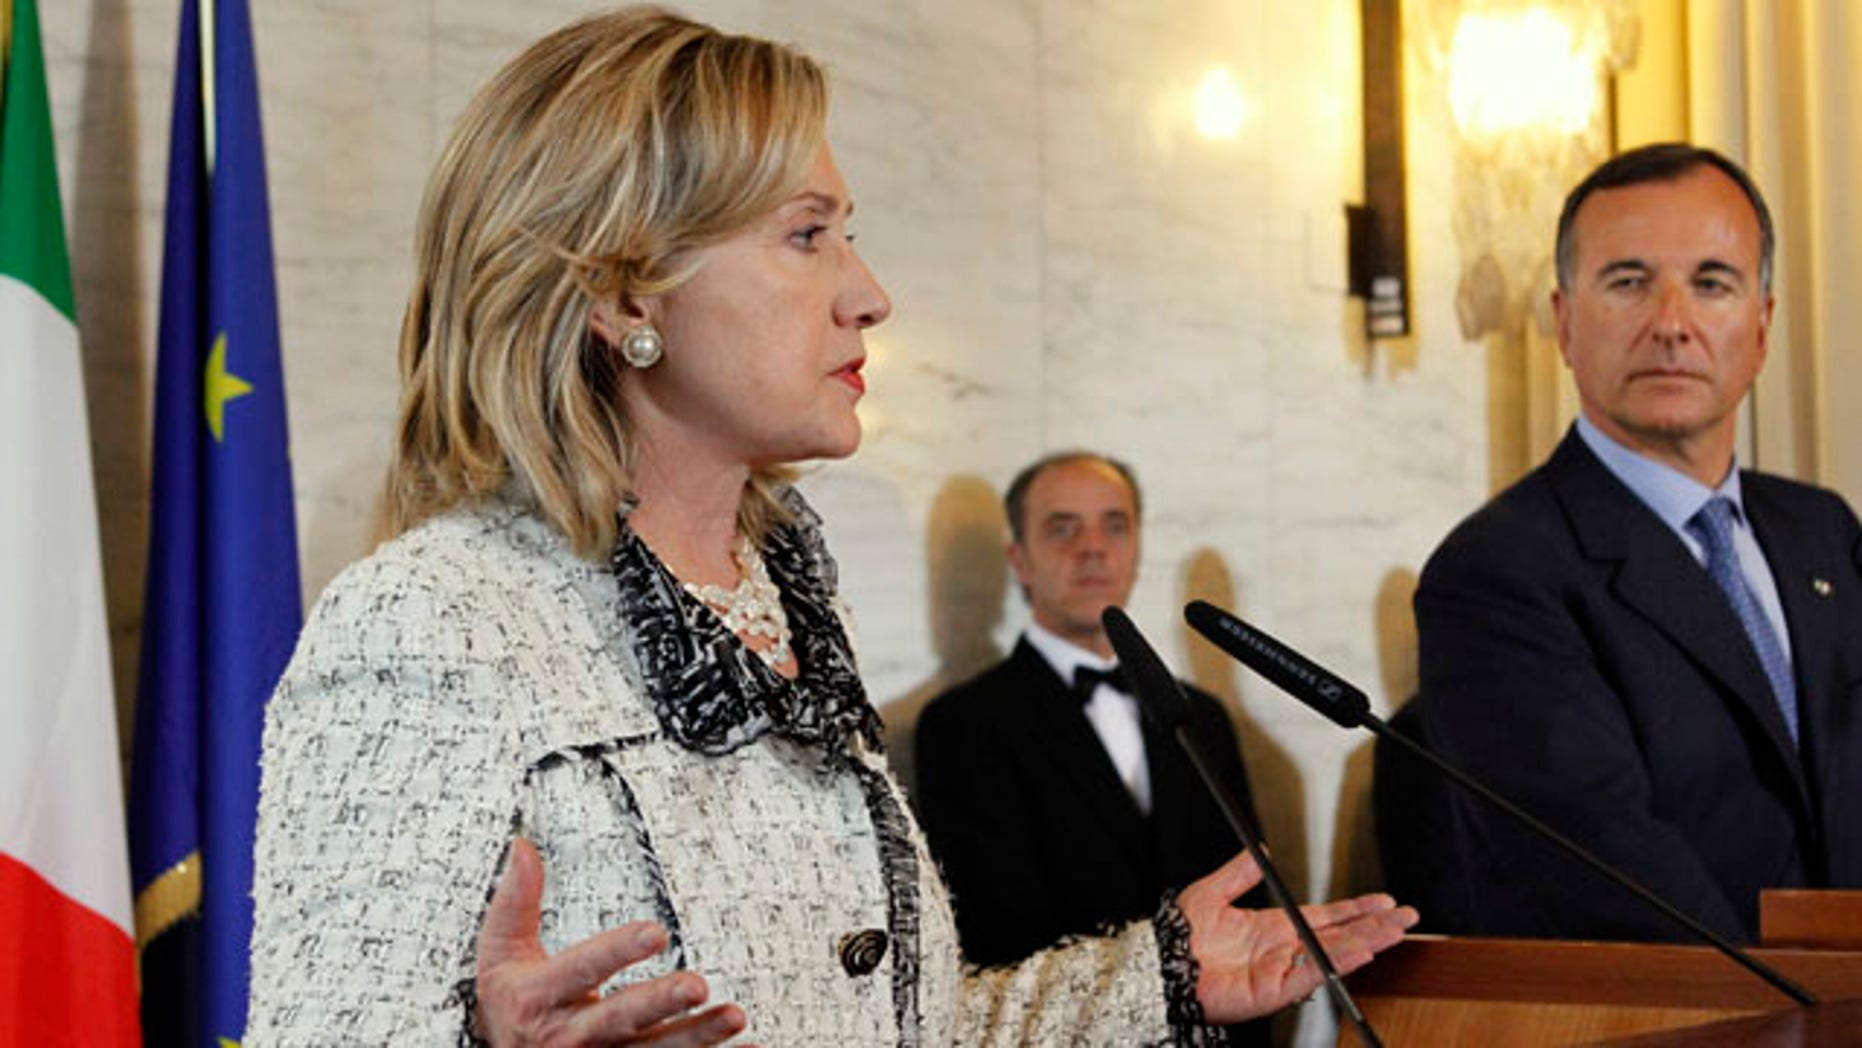 May 5: U.S. Secretary of State Hillary Rodham Clinton, left, speaks to the media with  Italy's Foreign Minister Franco Frattini at the Ministry of Foreign Affairs during the Second Contact Group Meeting on Libya, in Rome.